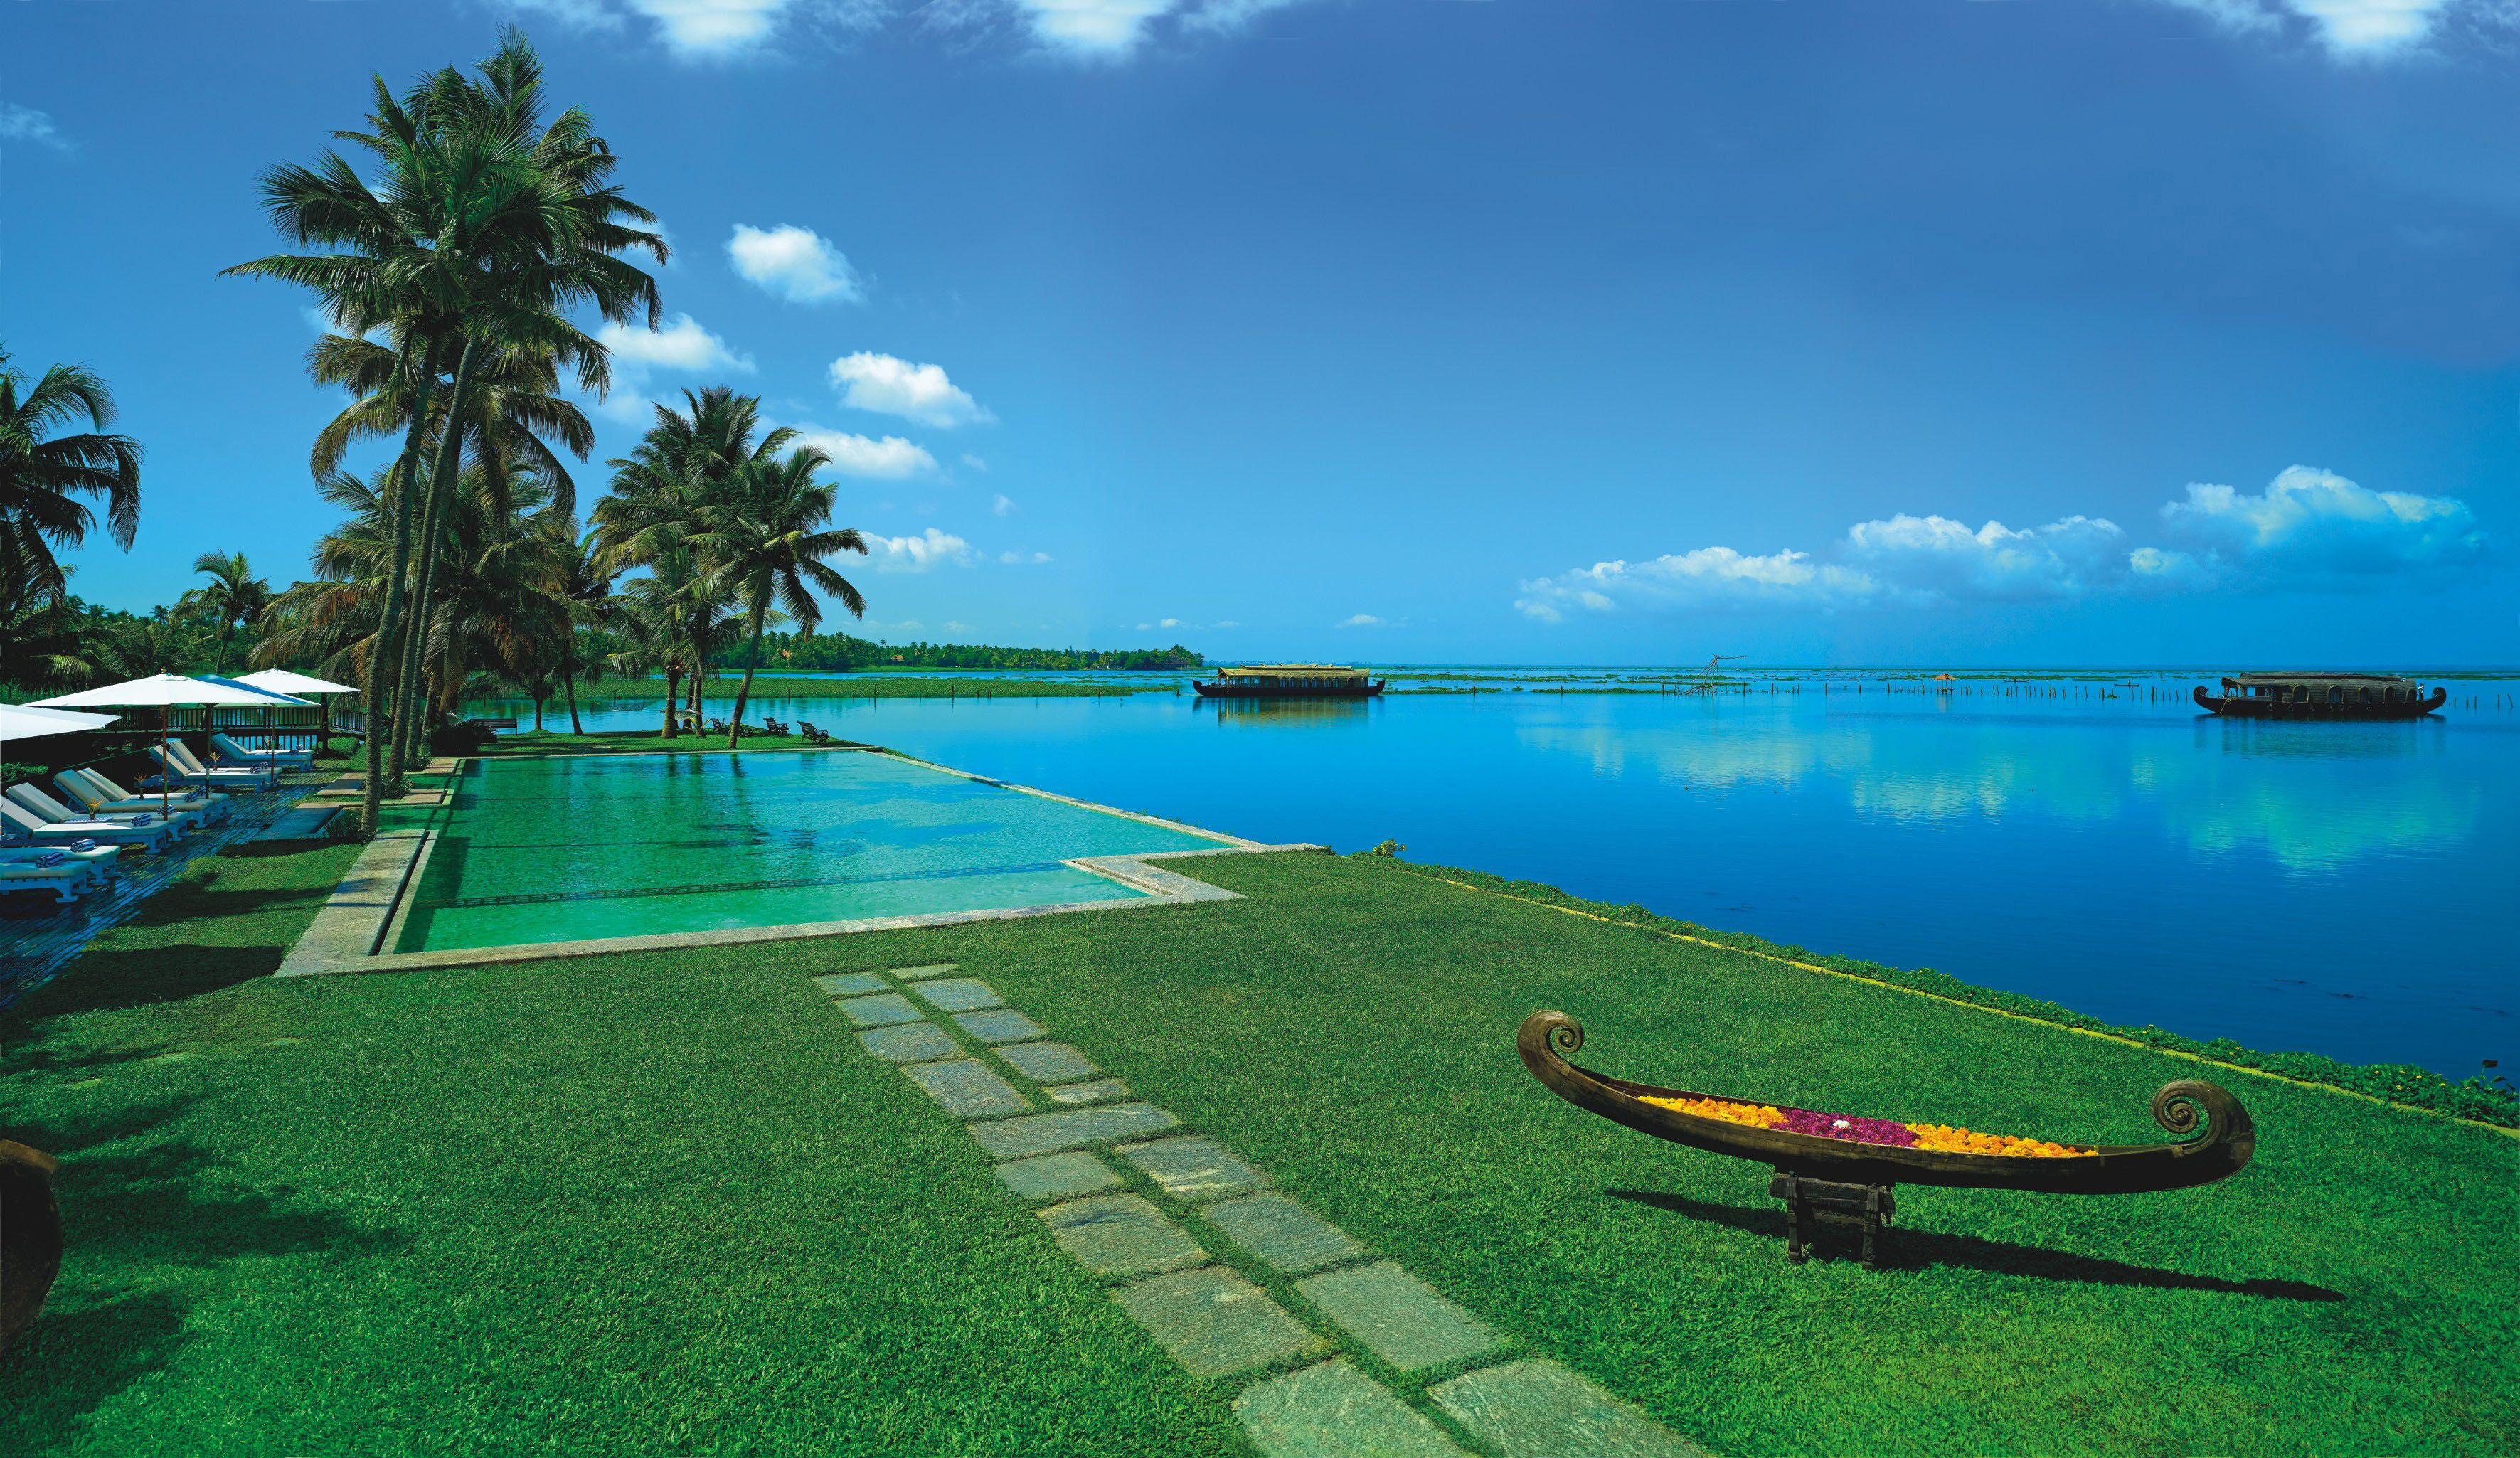 PC Kumarakom Lake Resort